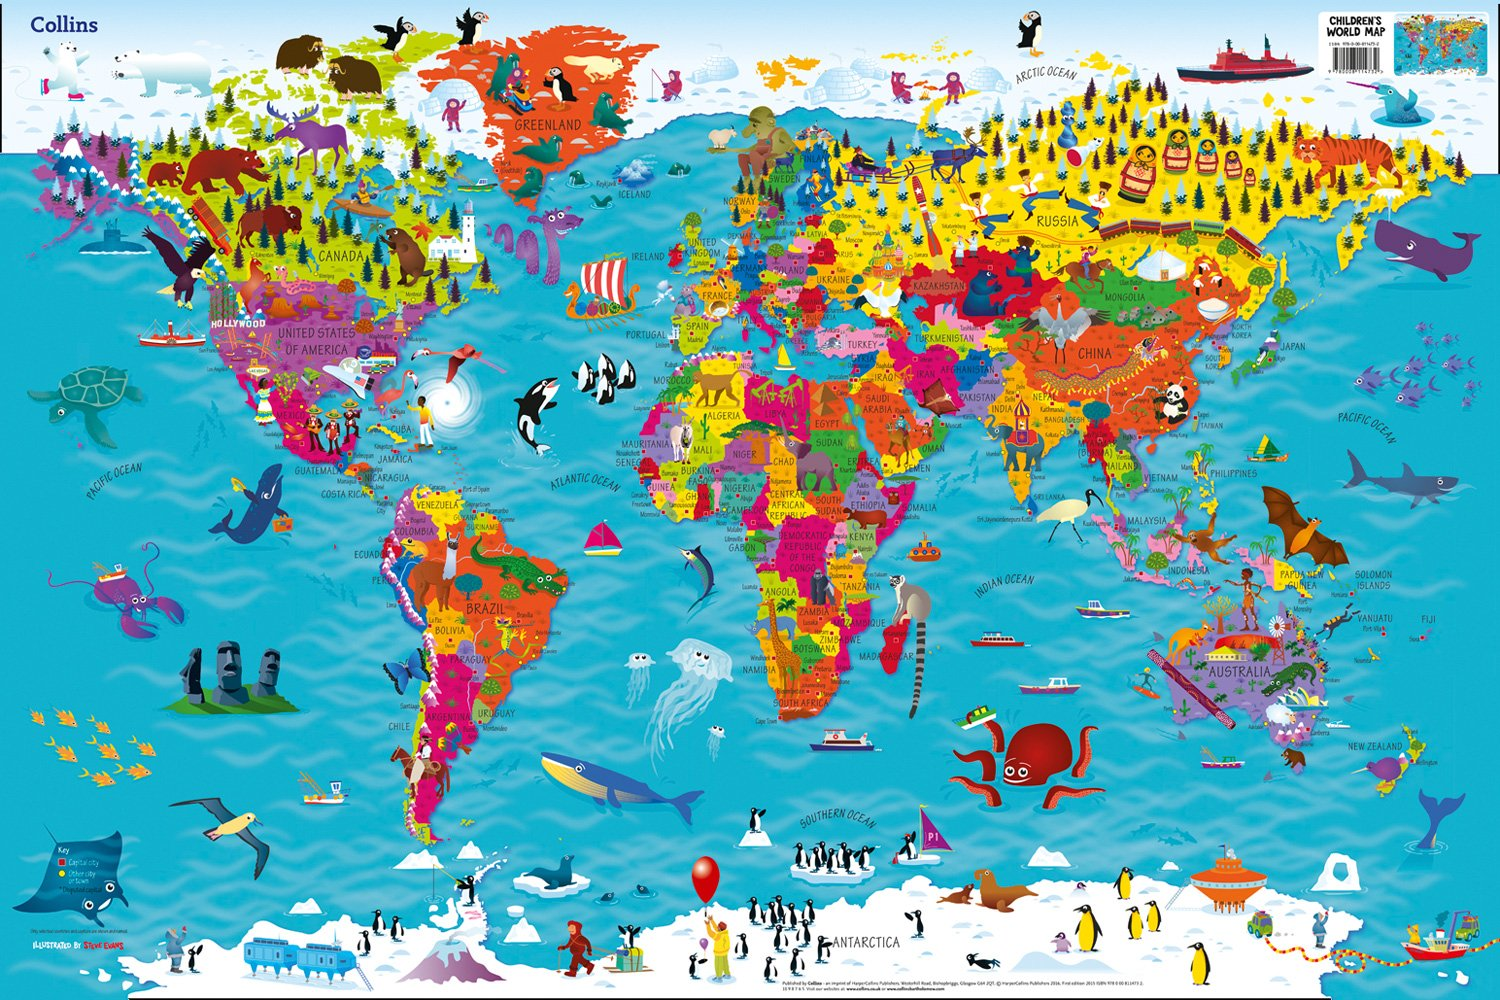 Collins Children's World Wall Laminated Map: 9780008313463 ... on glider map, statue map, inverted map, glass map, go to the map, palace map, border map, magnetic map, large map, world map, trench map, floor map, desk map, plant map, plate map, atlas map, home map, green map, englewood map, step map,